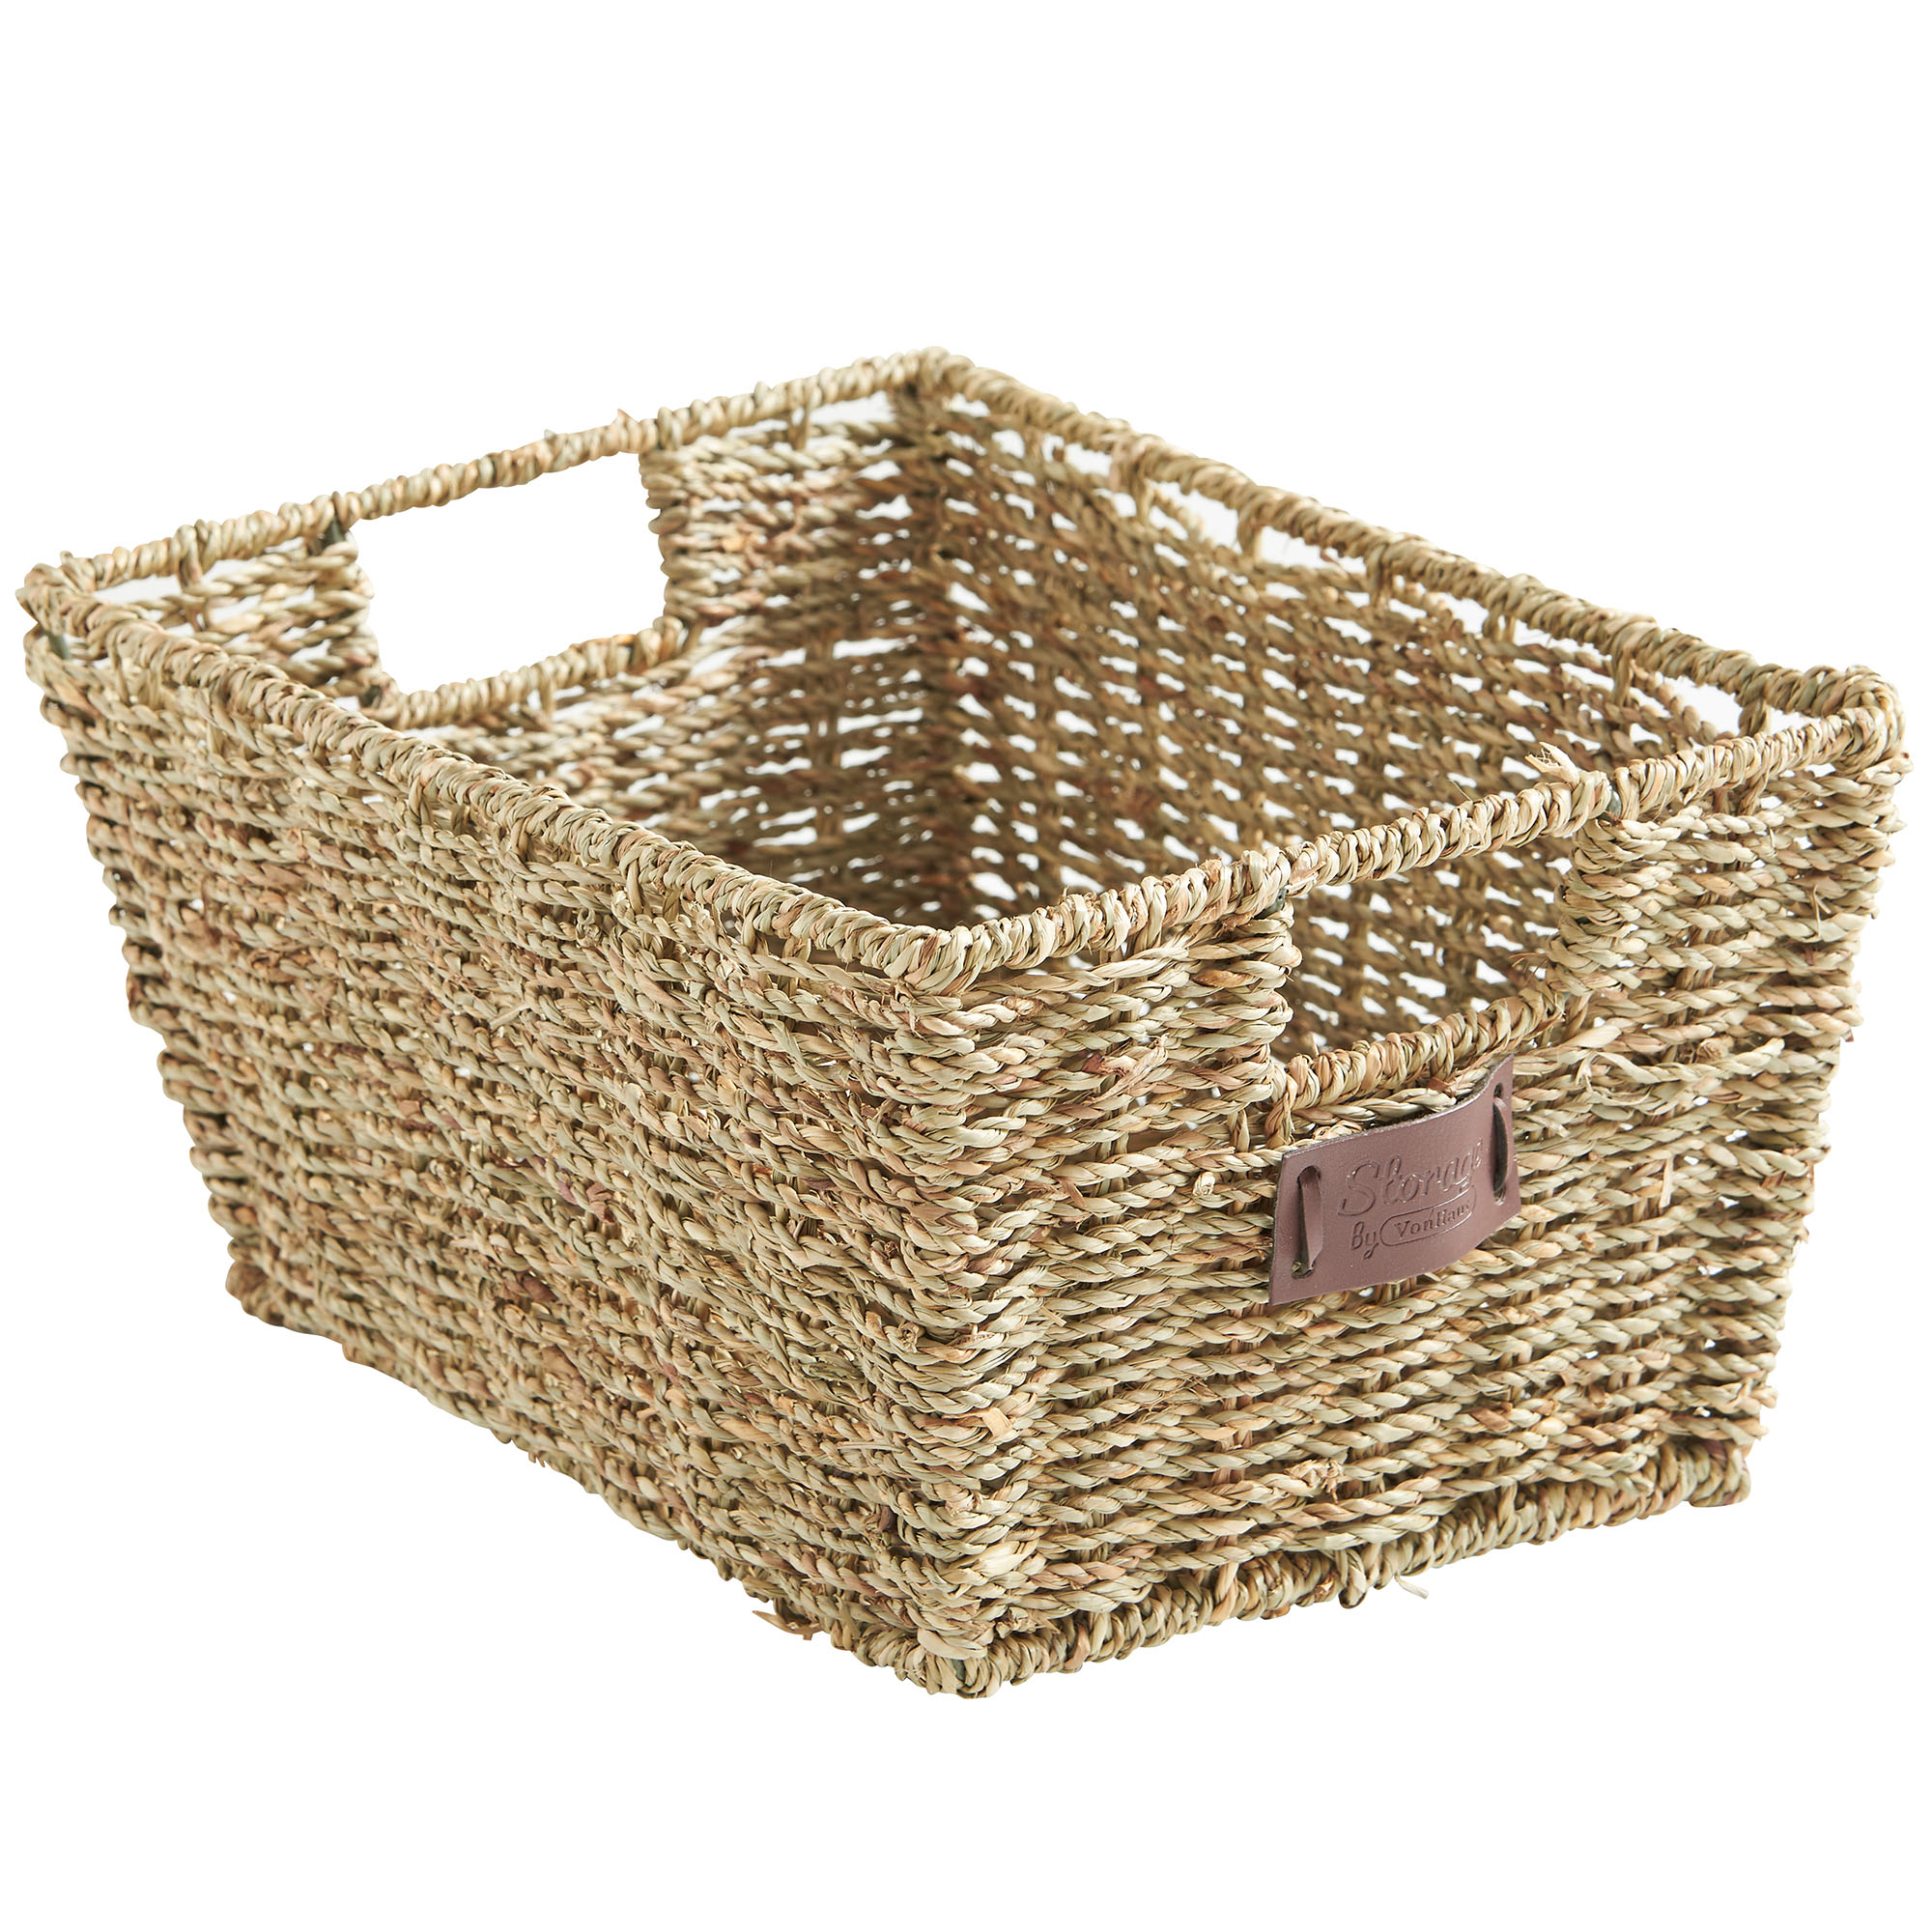 Sentinel VonHaus Set Of 4 Seagrass Storage Baskets With Insert Handles    Home U0026 Bathroom Organizer Baskets